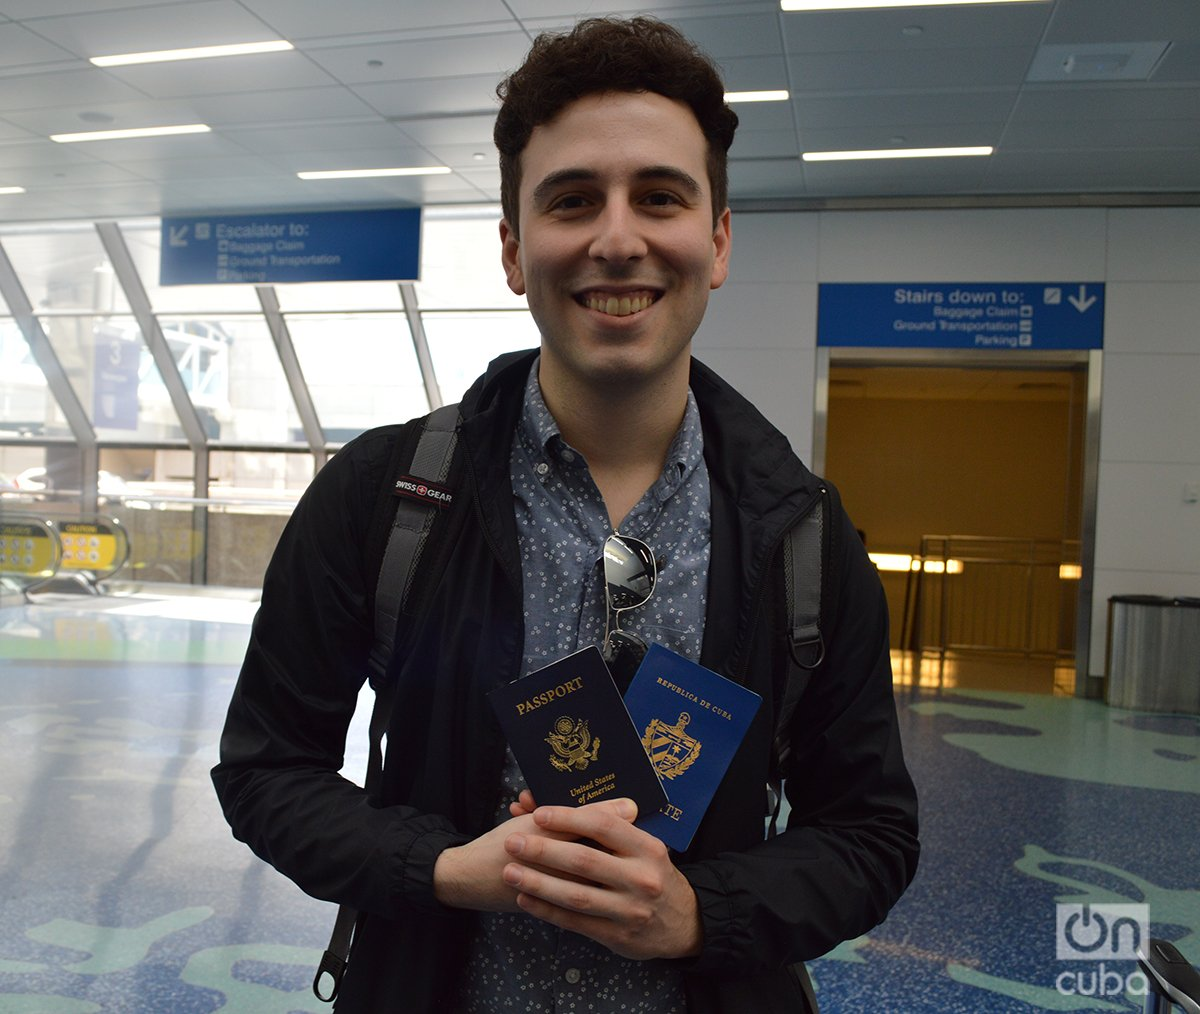 Ivel Posada Martínez travels to Cuba with his two passports, the Cuban and the American. Photo: Marita Pérez Díaz.